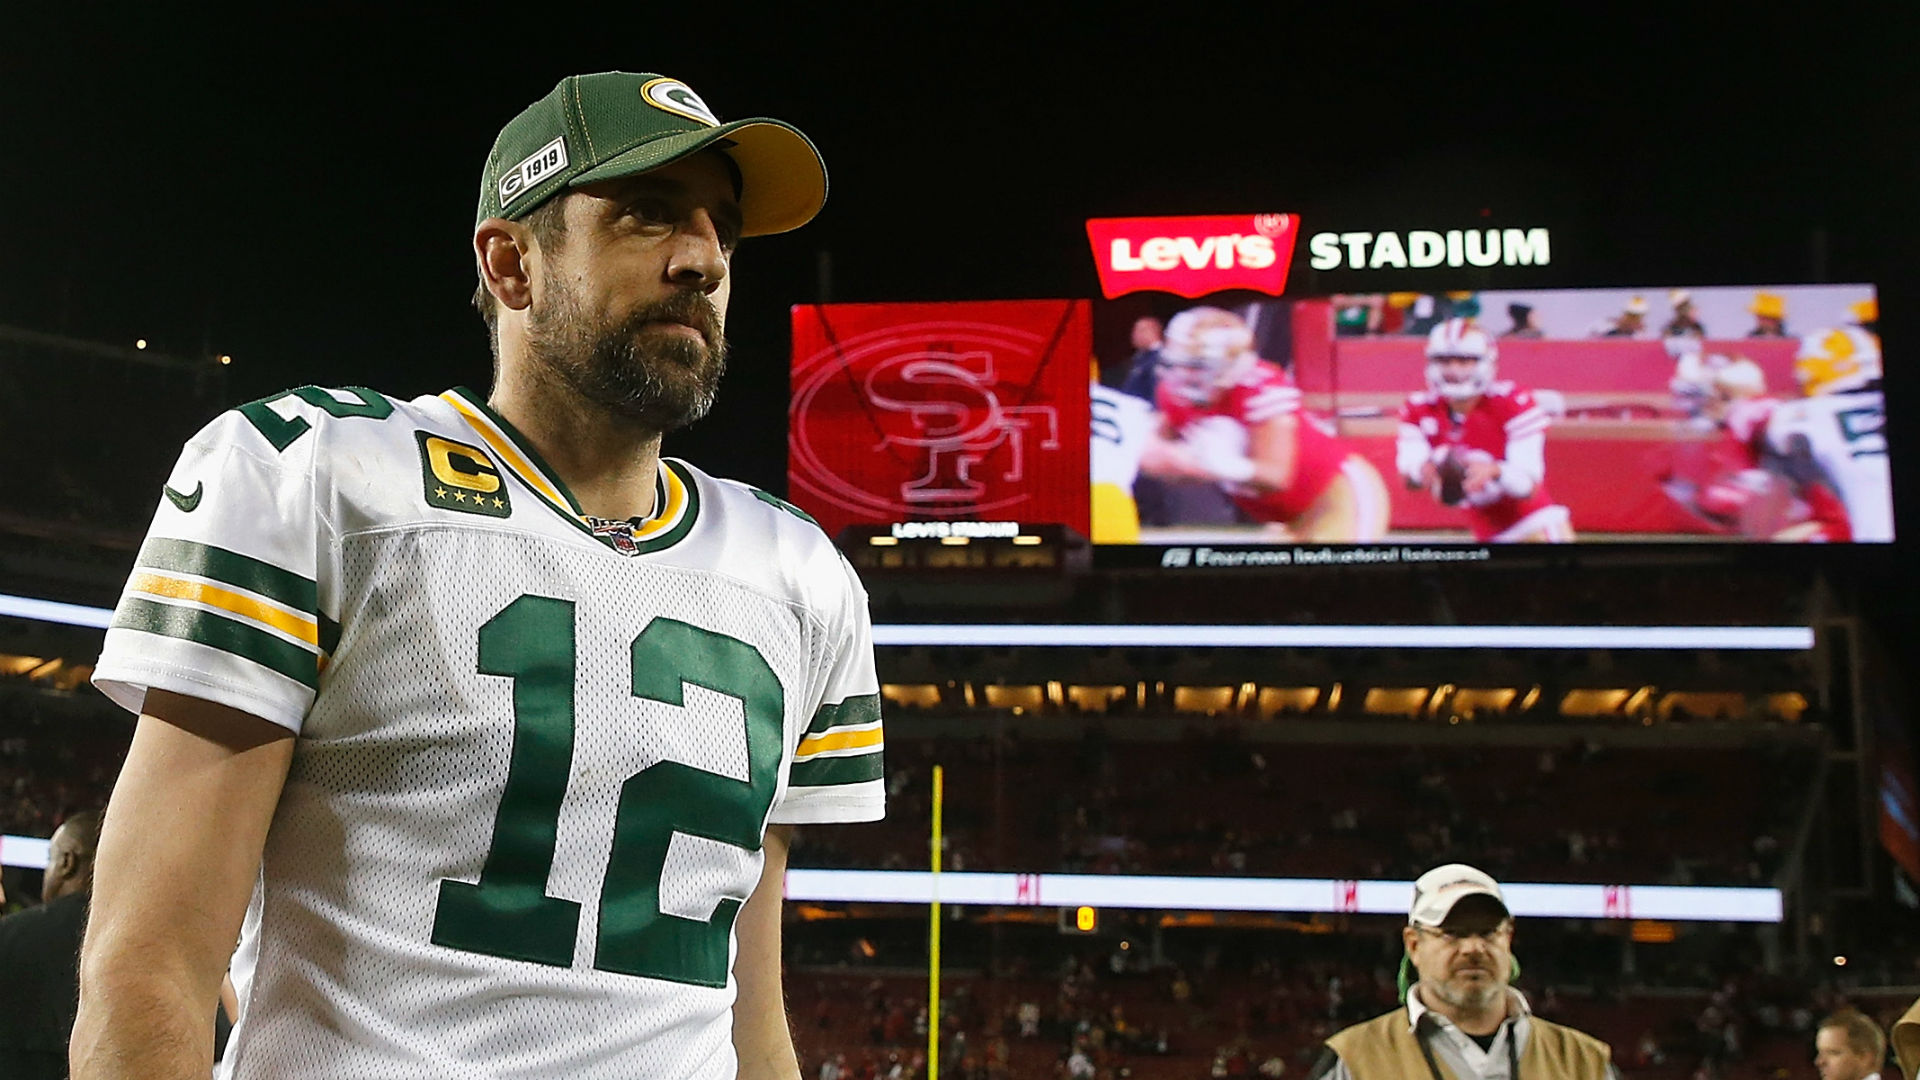 Aaron Rodgers candidly discusses Packers' Jordan Love pick: 'I poured myself some tequila' 1